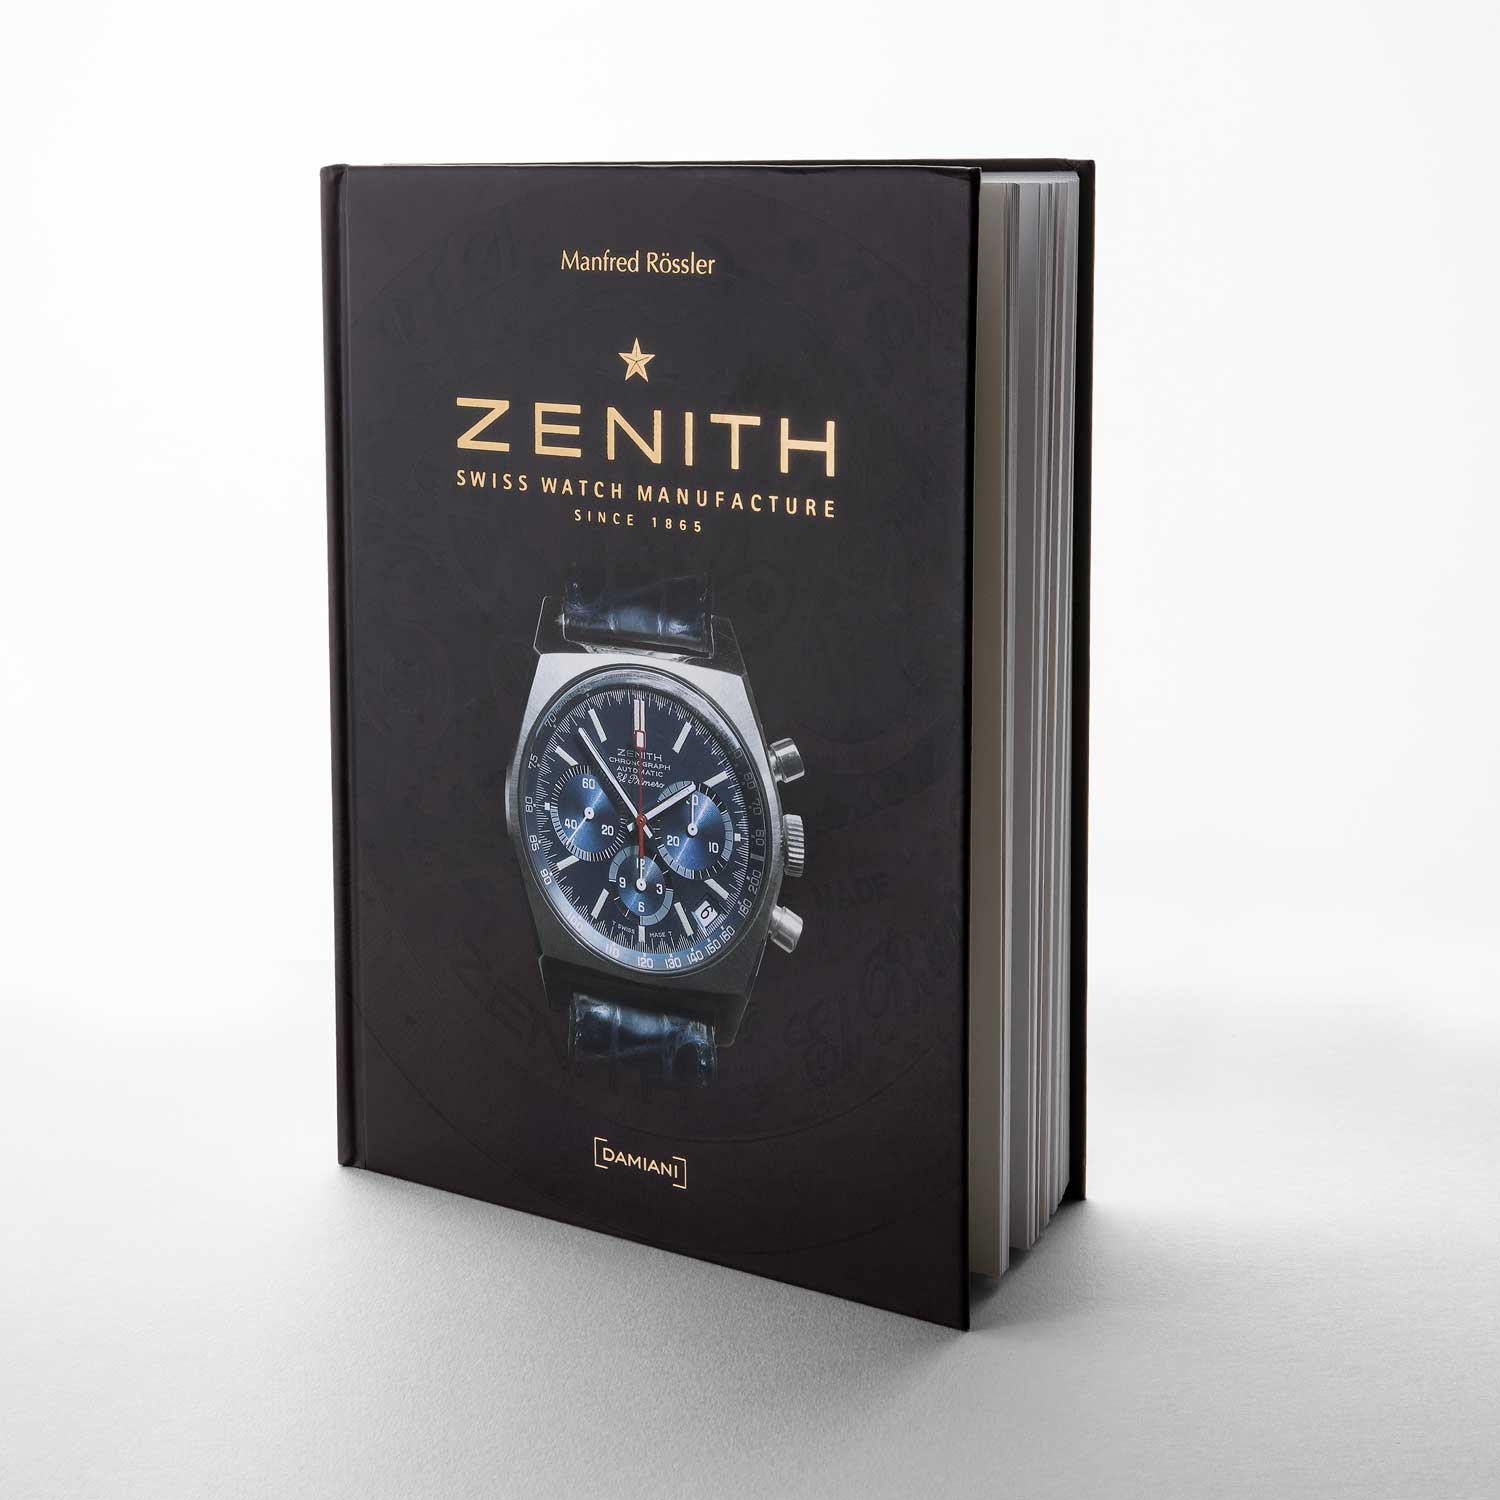 Manfred Rössler's book titled Zenith: Swiss Watch Manufacture Since 1865 (Image © Revolution)